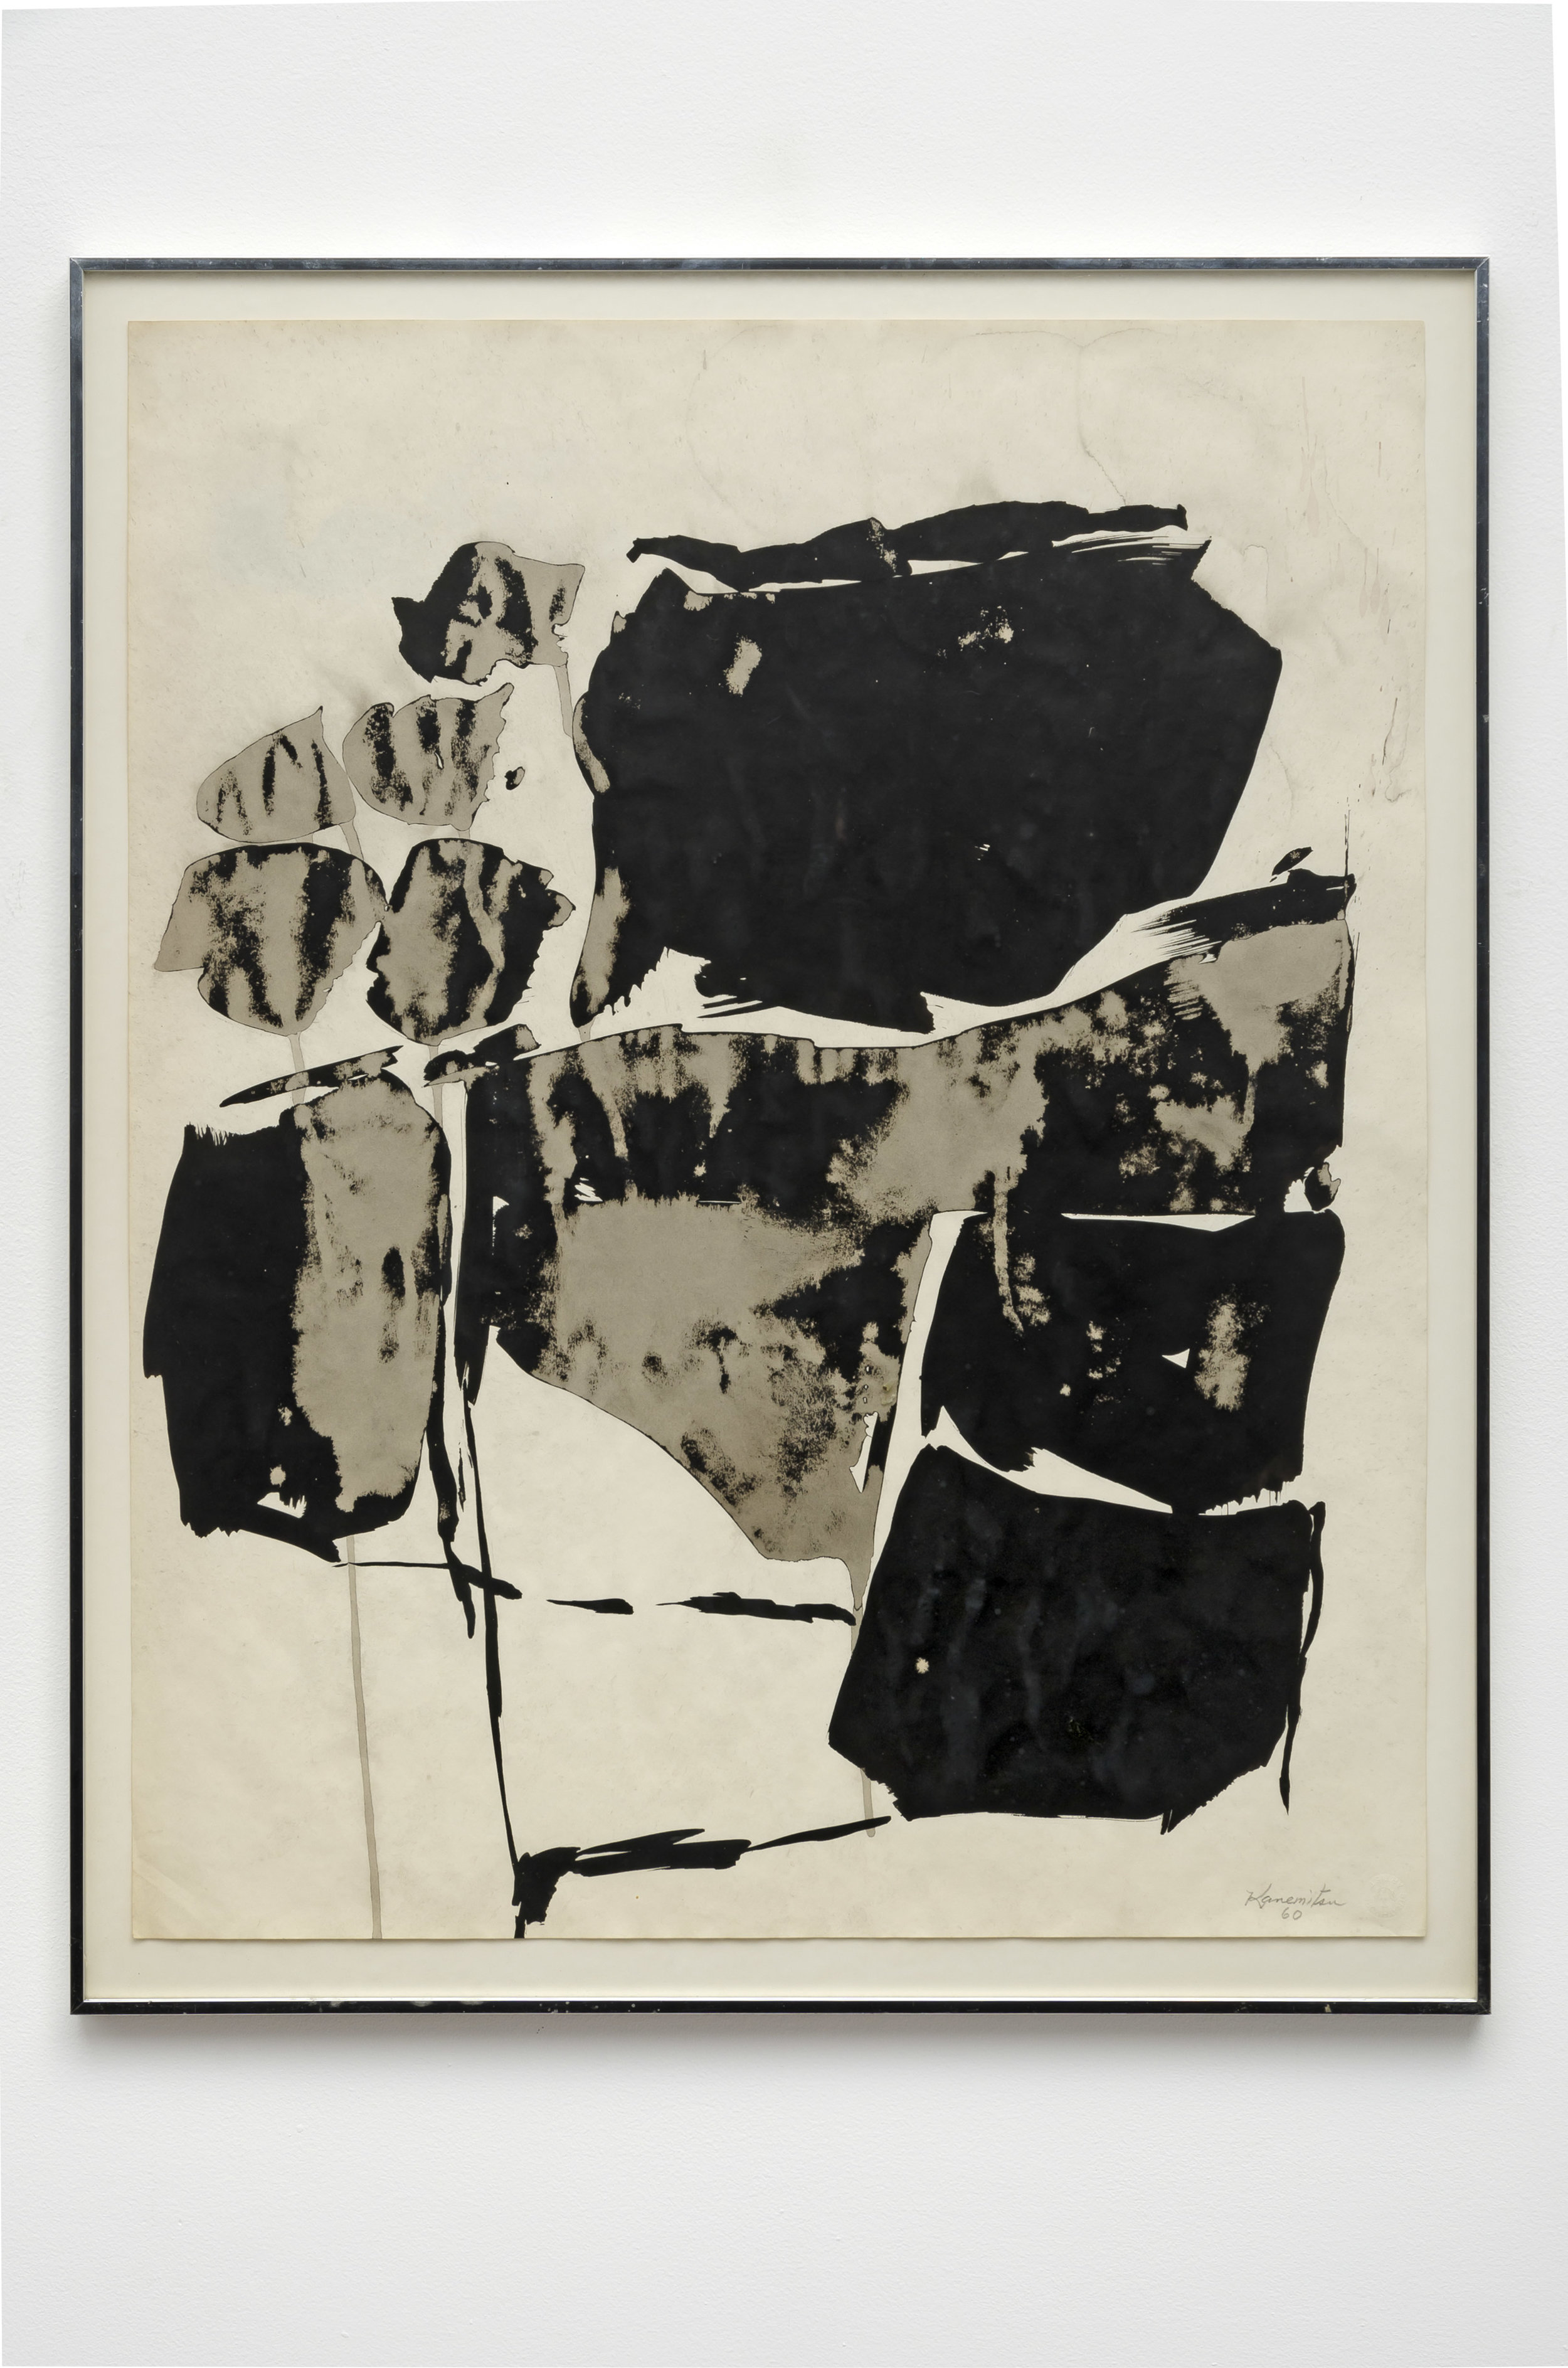 16–20 , 1960 sumi ink on paper 29 x 23 inches; 73.7 x 58.4 centimeters